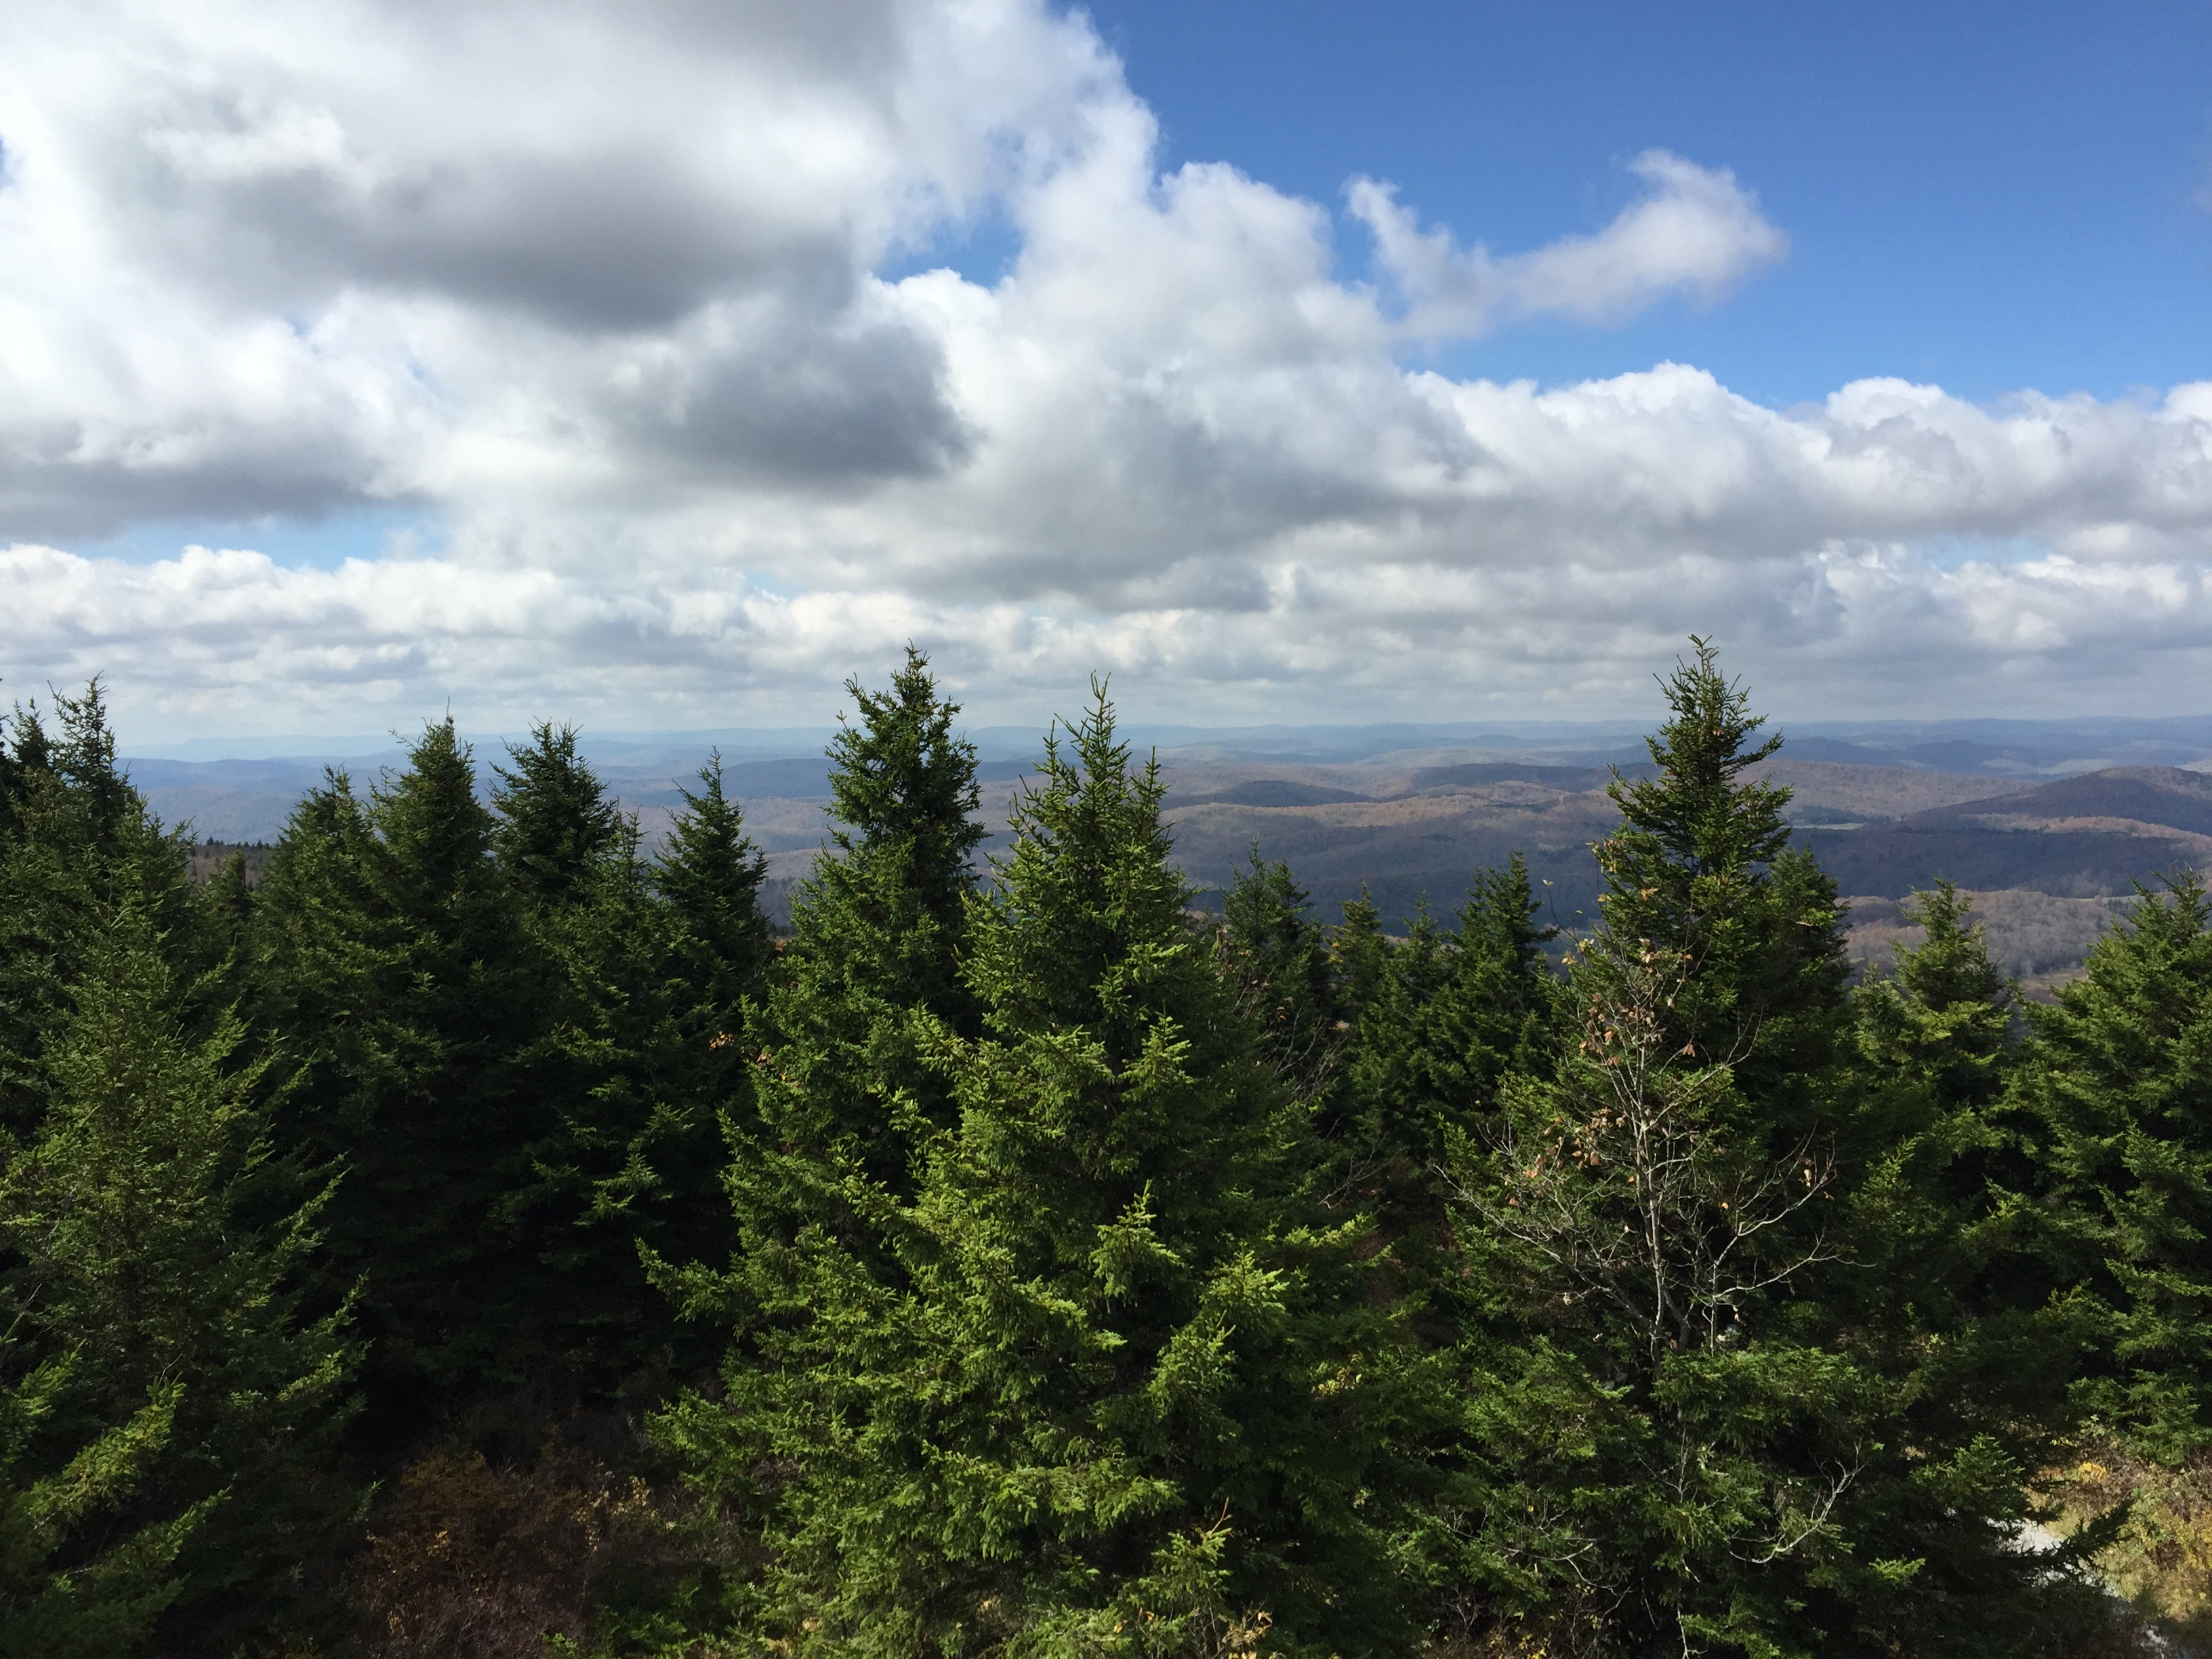 File:2015-10-07 12 57 45 View west across Red Spruce ...